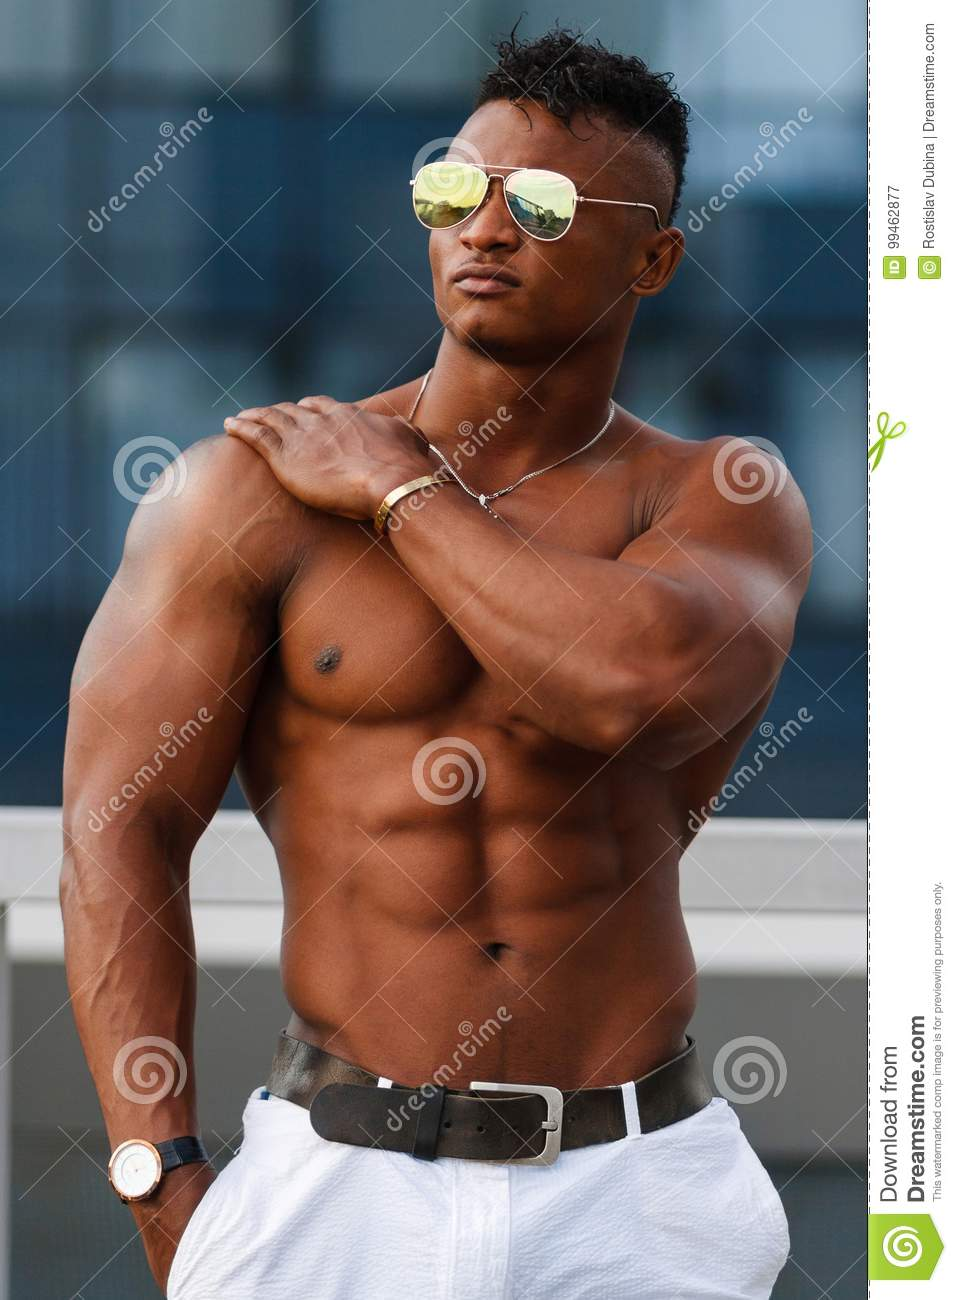 Hot black male models obvious, you